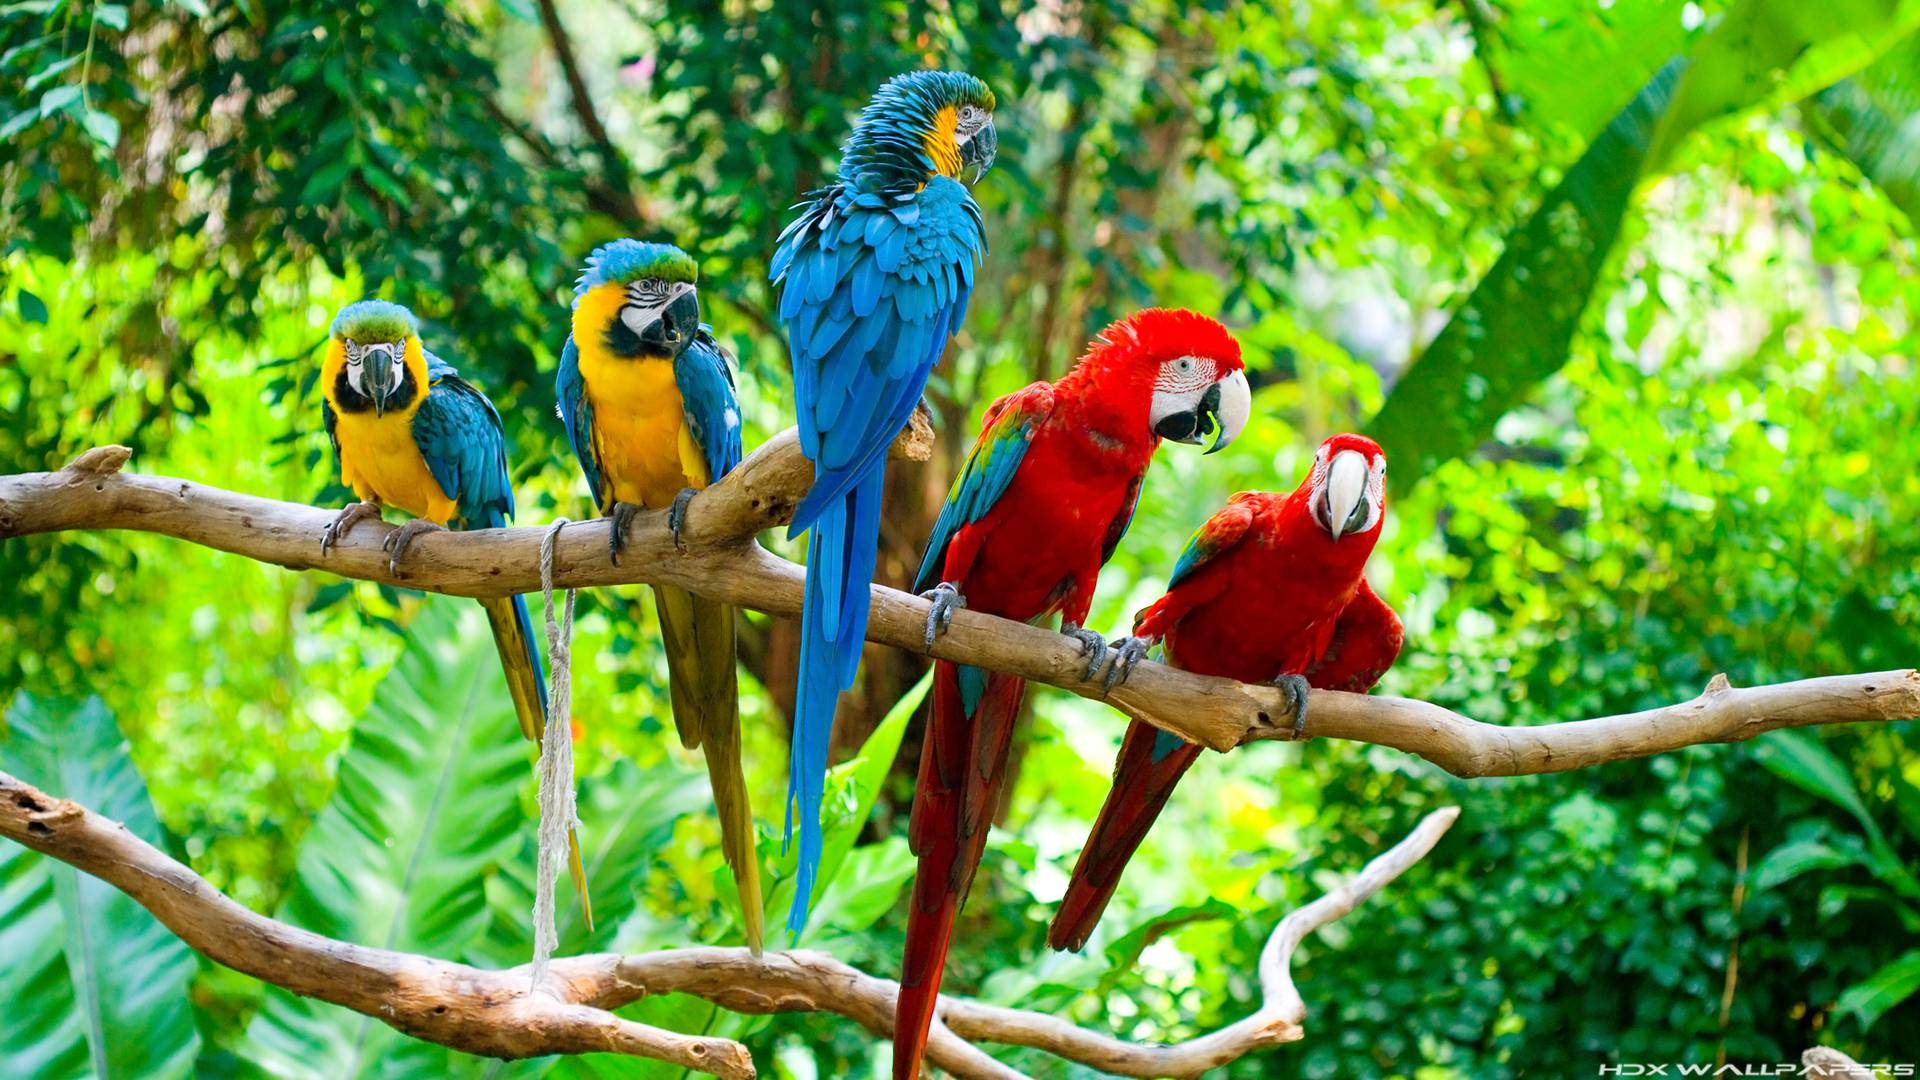 Image For > Blue Macaw Parrot Wallpapers